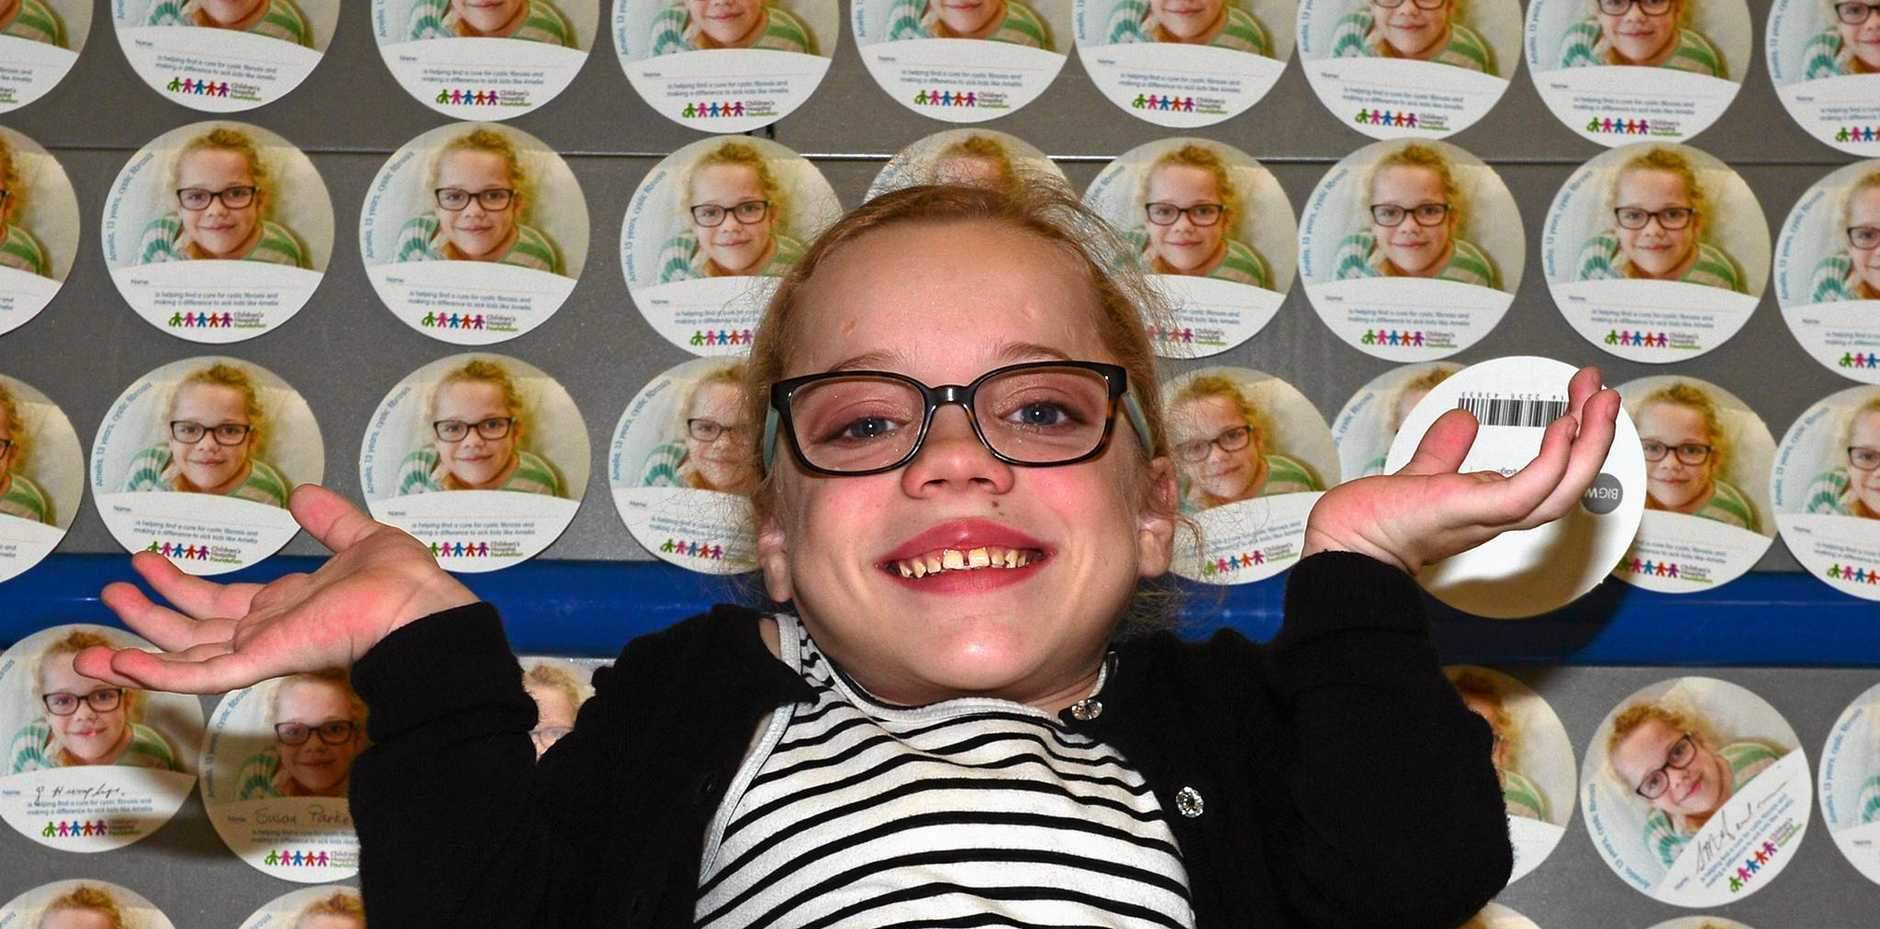 Amelia Callow is the face of the Big W 'Big Hearts' campaign to help fund the Children's Hospital Foundation.